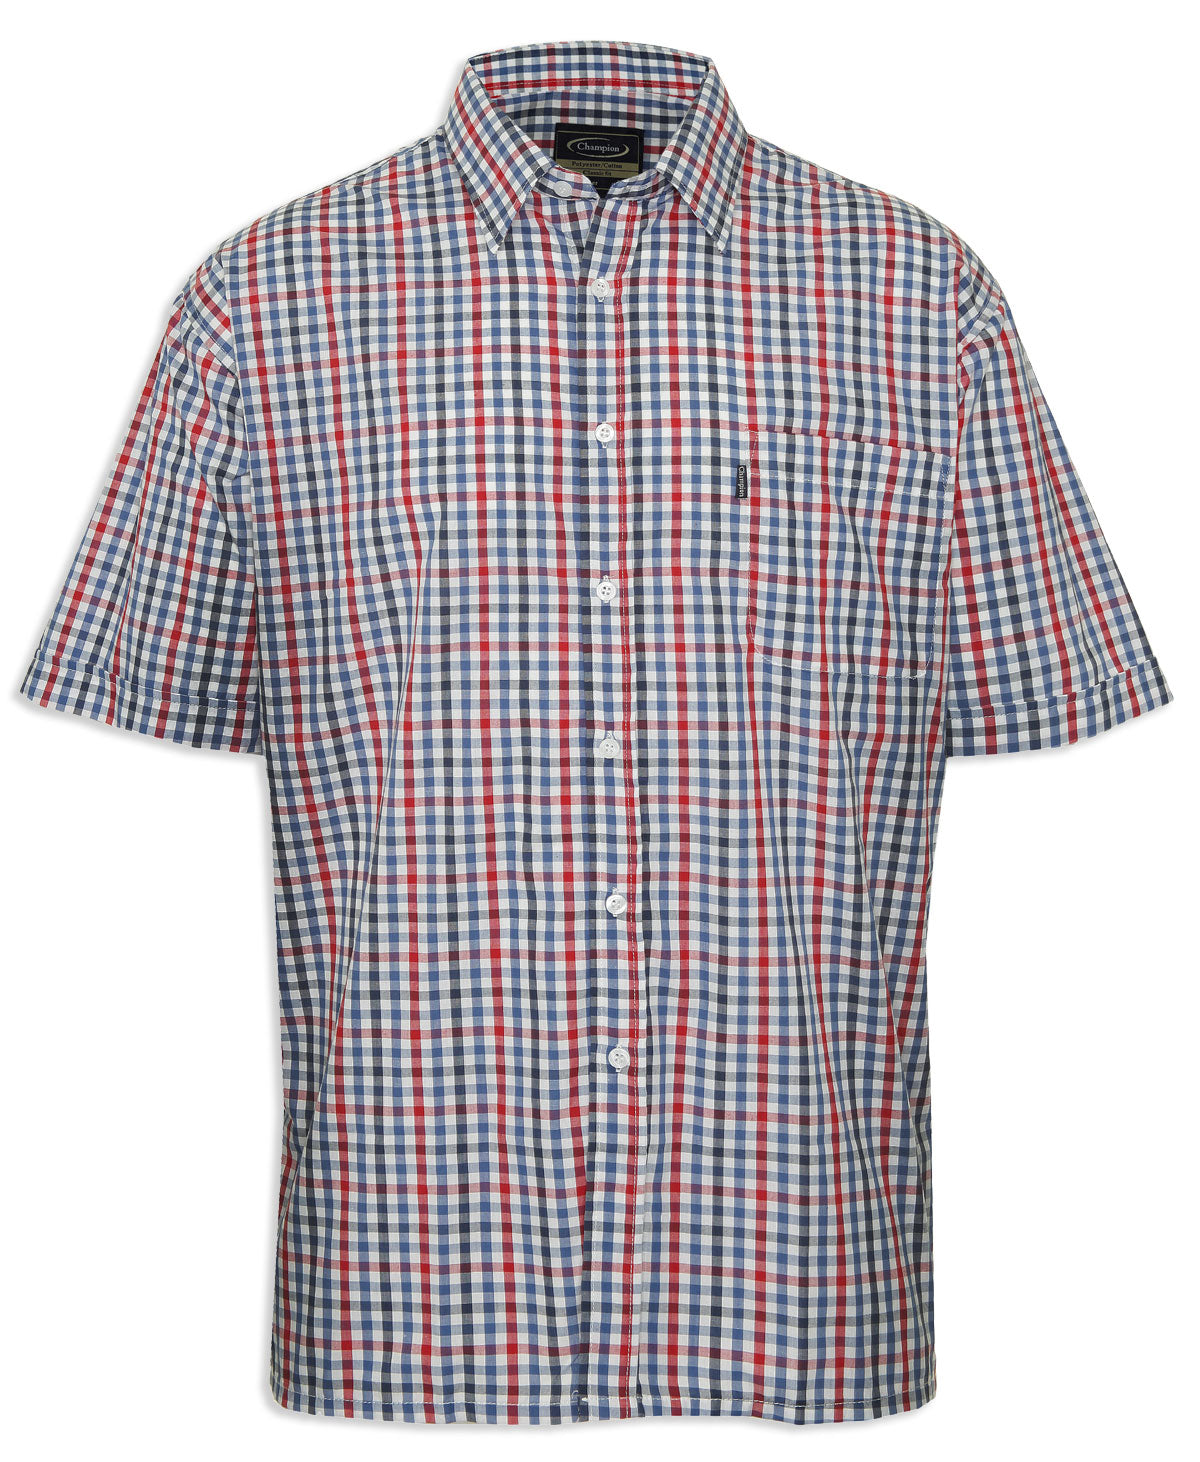 Champion Doncaster Short Sleeved Shirt red blue check